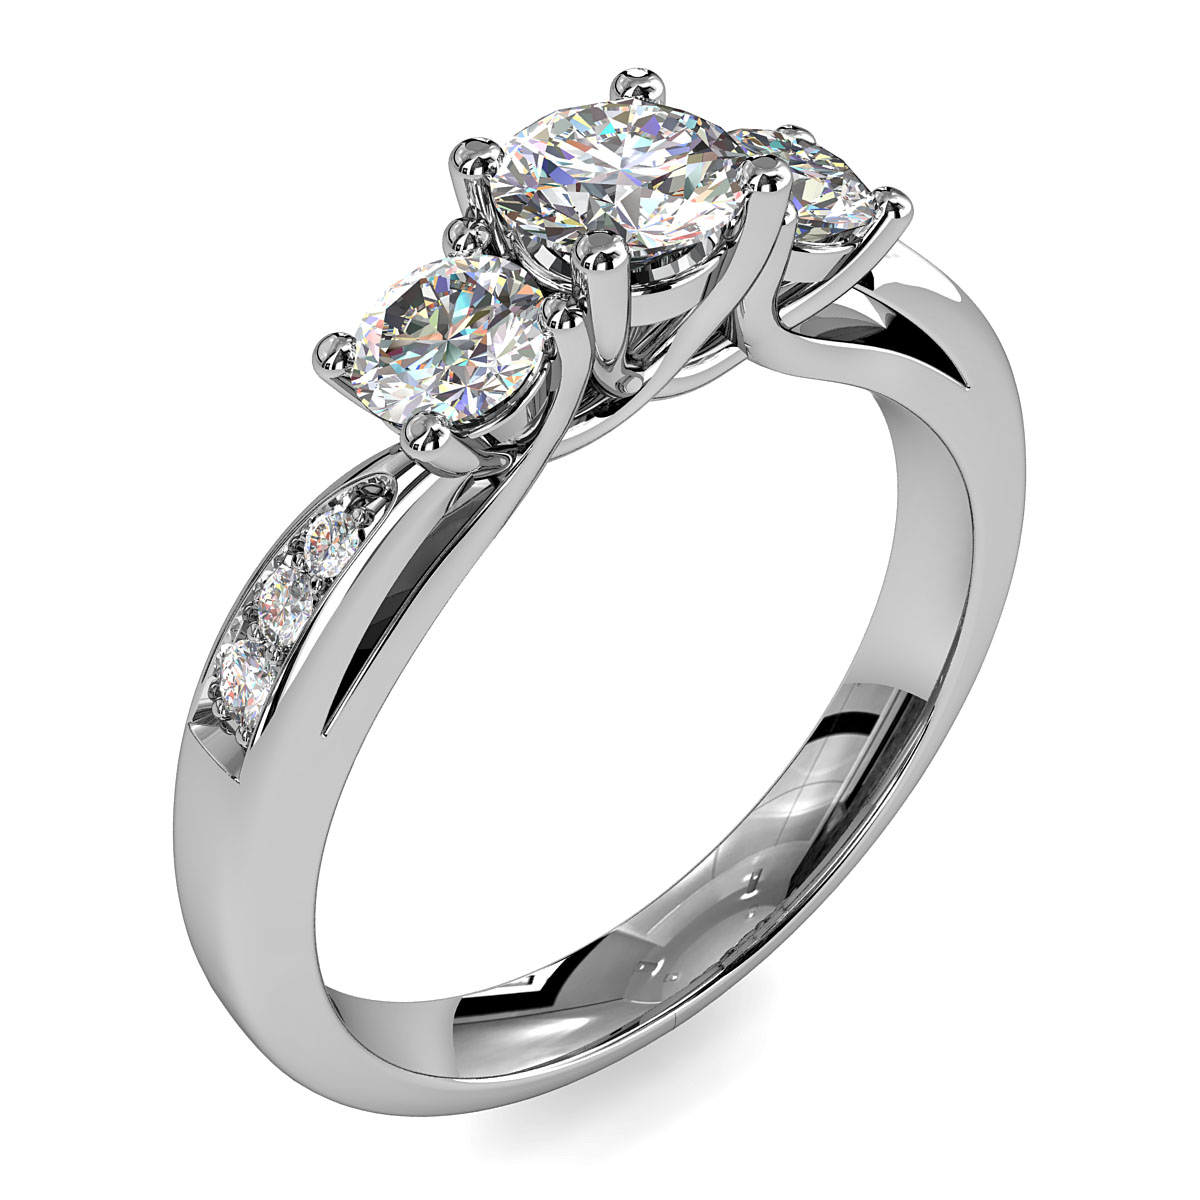 Round Brilliant Cut Diamond Trilogy Engagement Ring, Stones 4 Claw Set on a Curved Bead Set Band with Undersweep Setting.